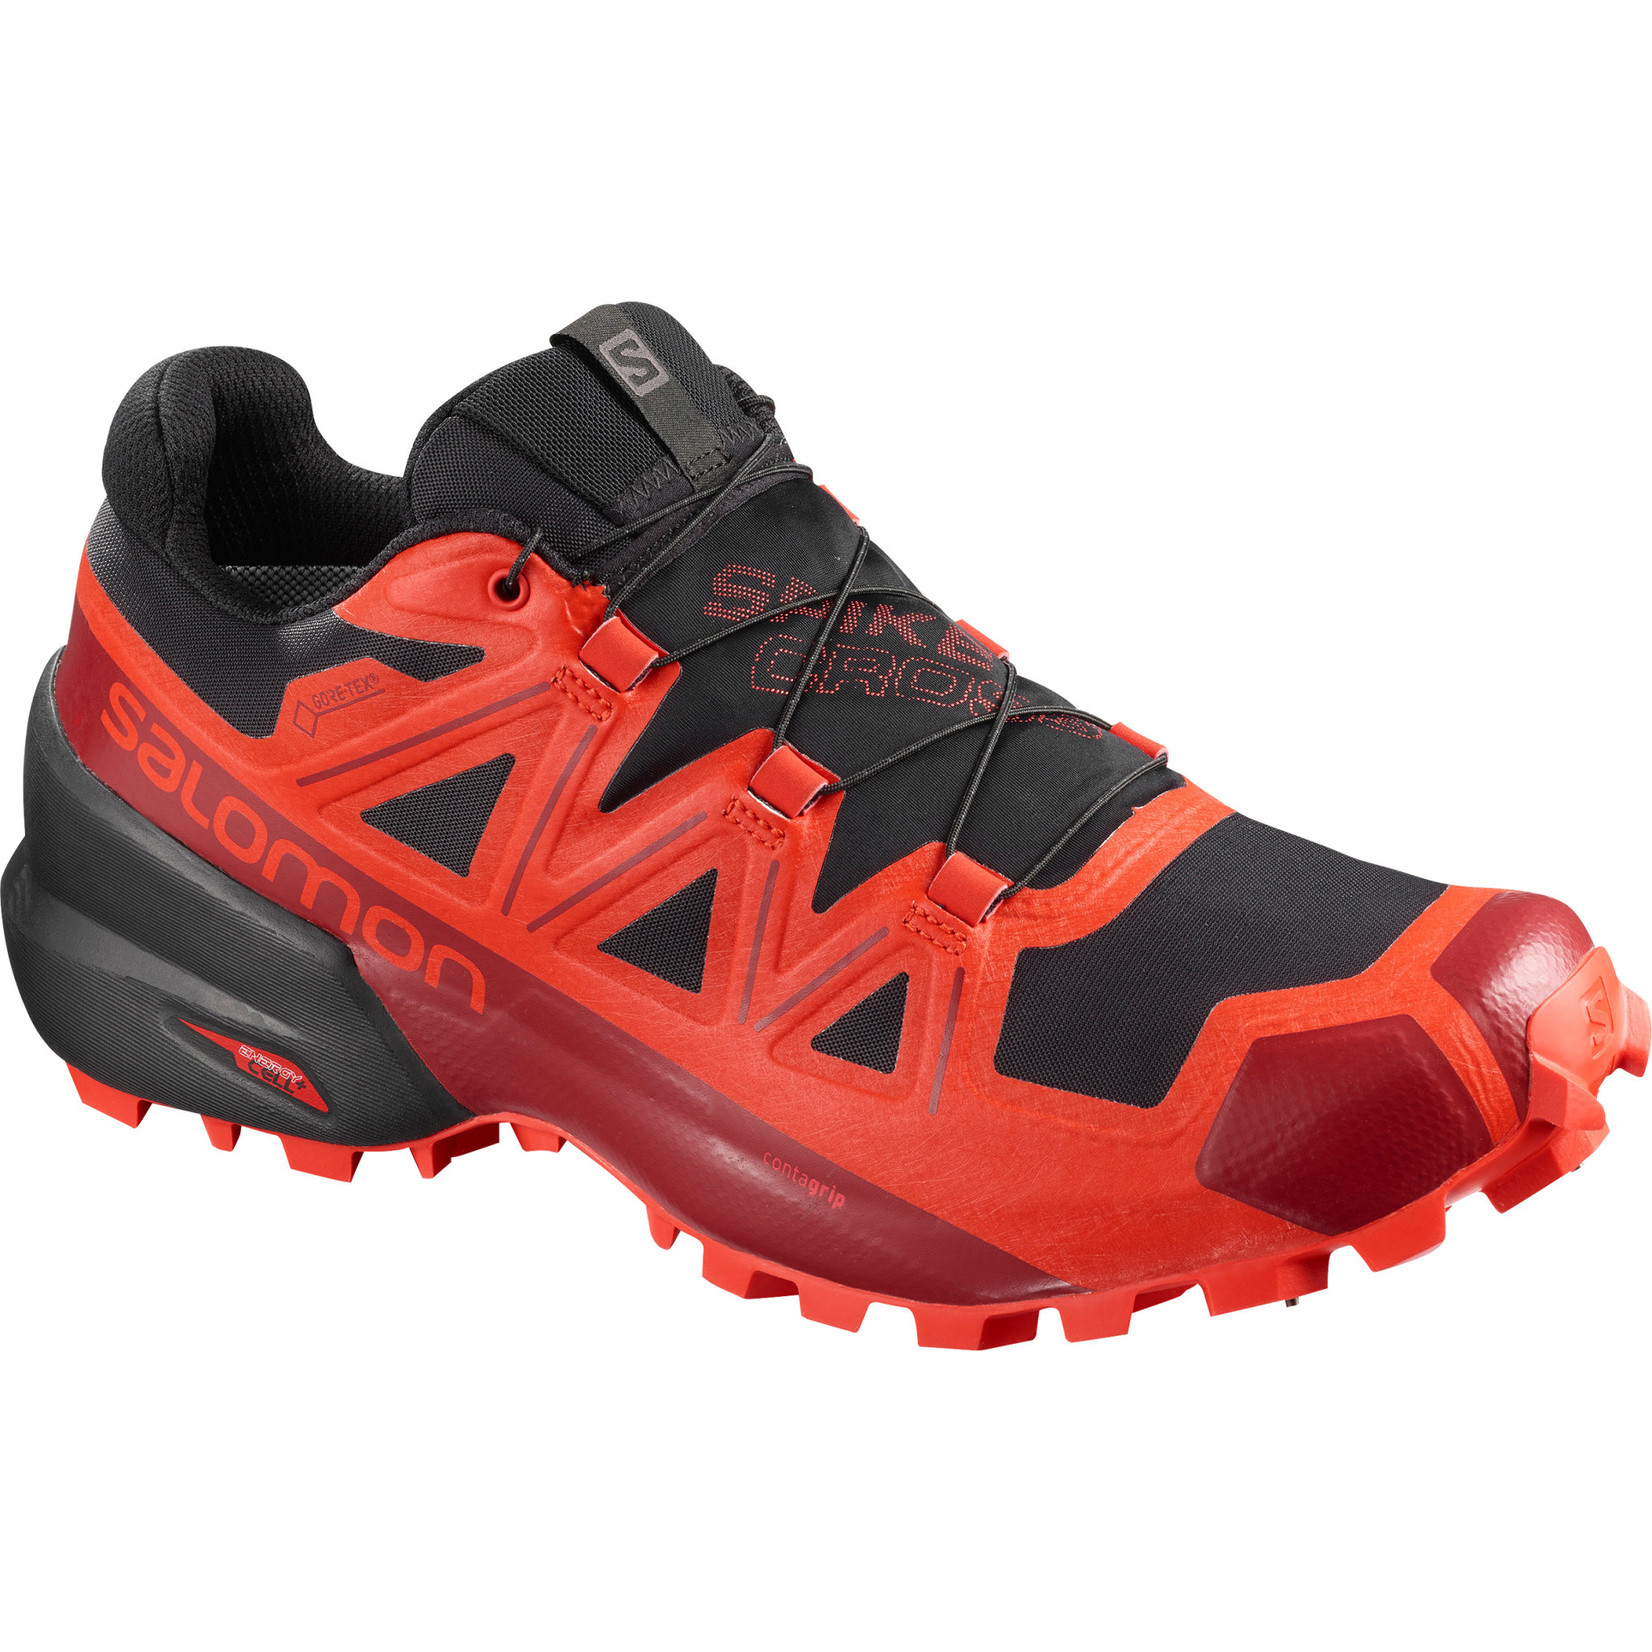 SALOMON Salomon Spikecross 5 Goretex